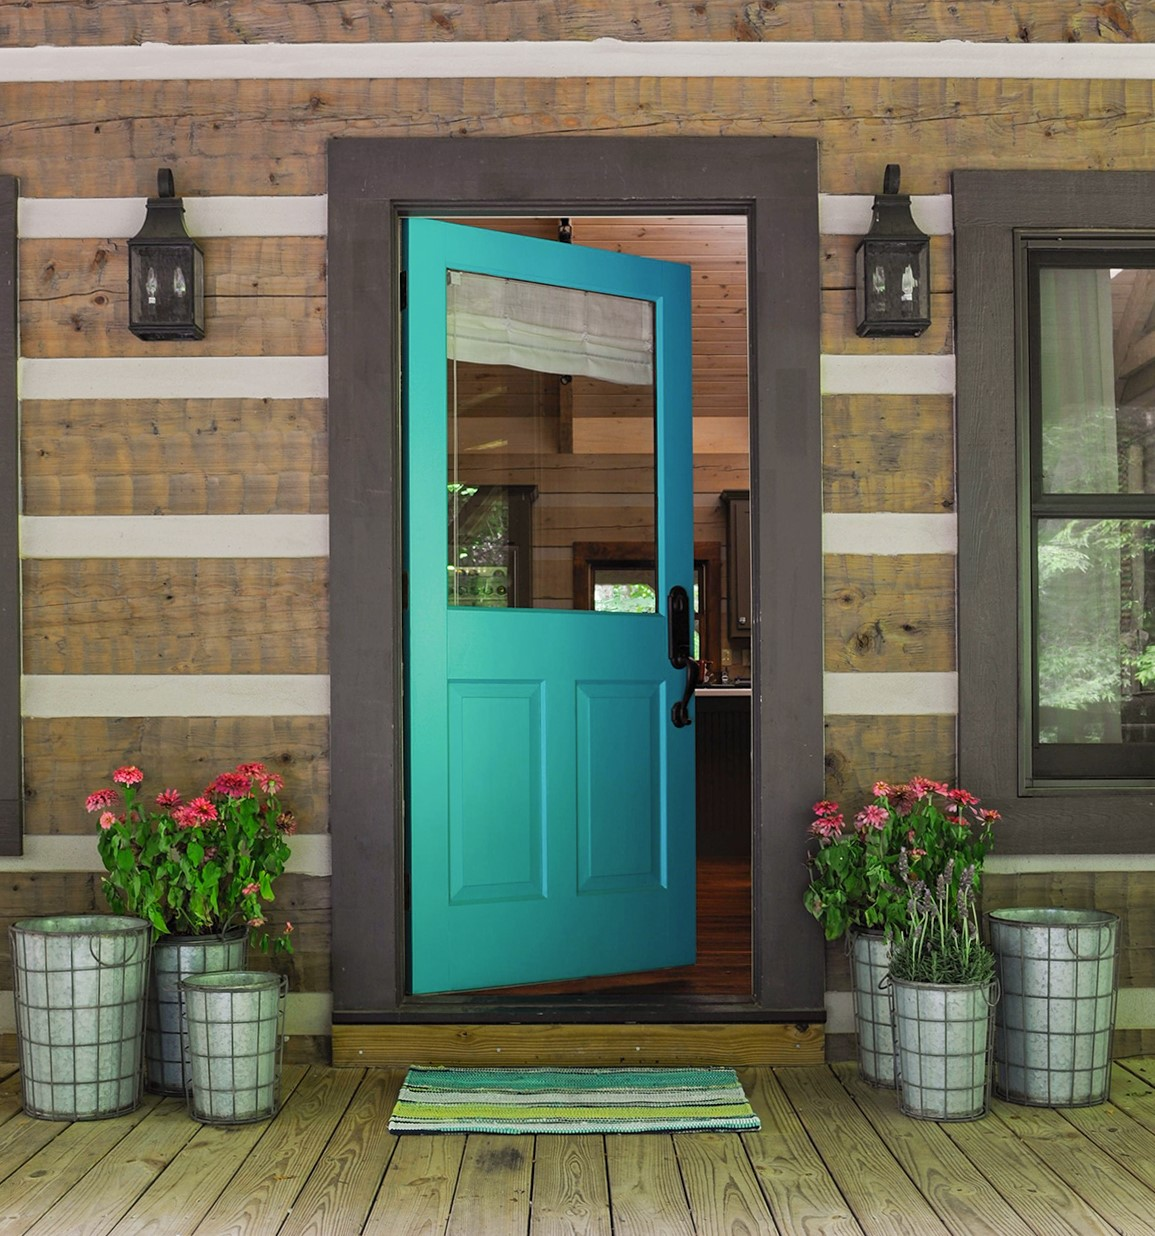 Bright teal-colored door on a log cabin